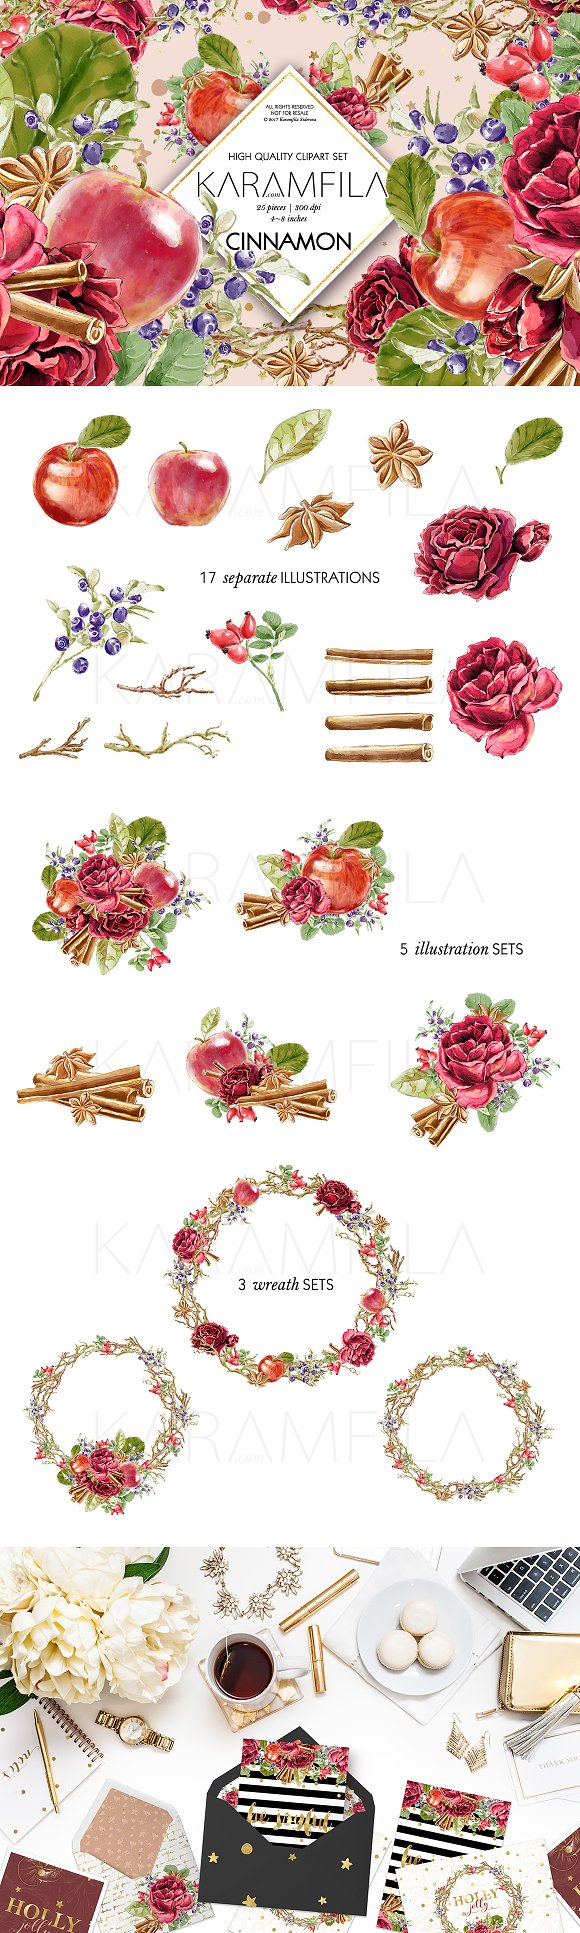 Cinnamon And Apples Clipart